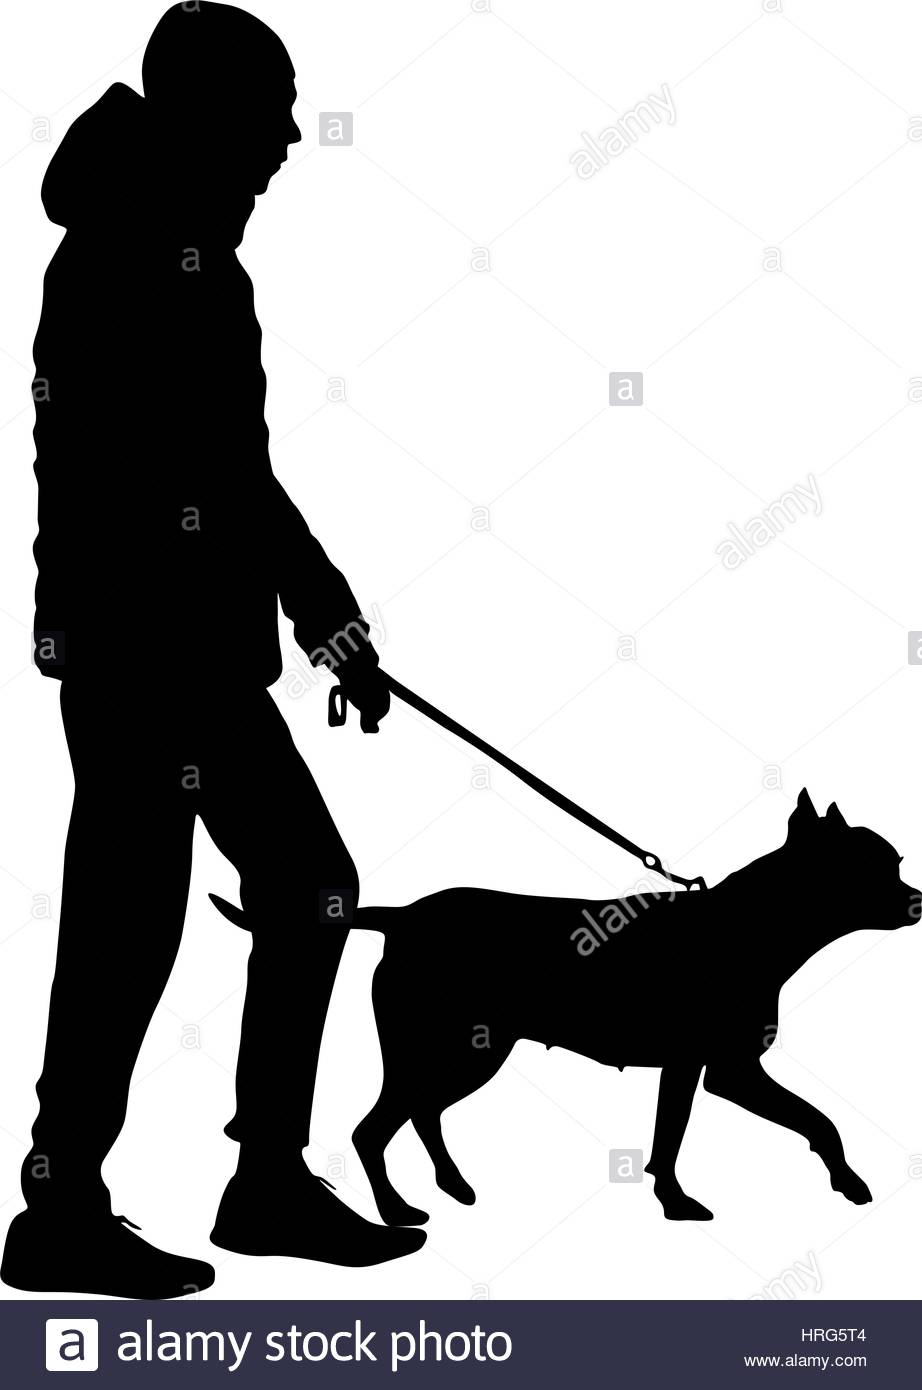 922x1390 Silhouette Of People And Dog. Vector Illustration Stock Vector Art